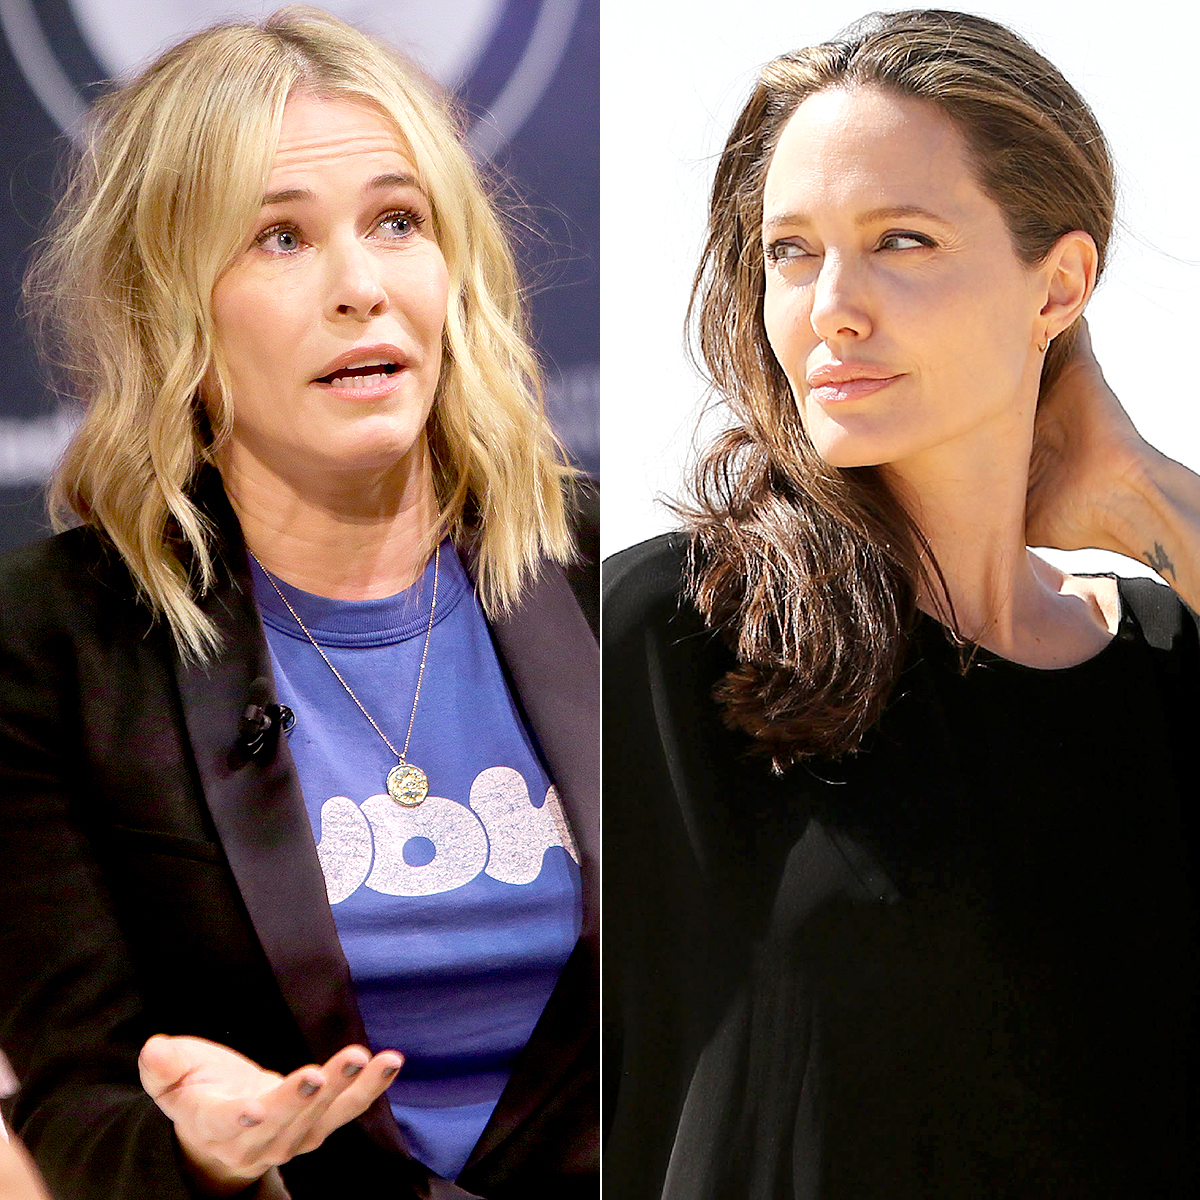 Chelsea Handler and Angelina Jolie Page 1700